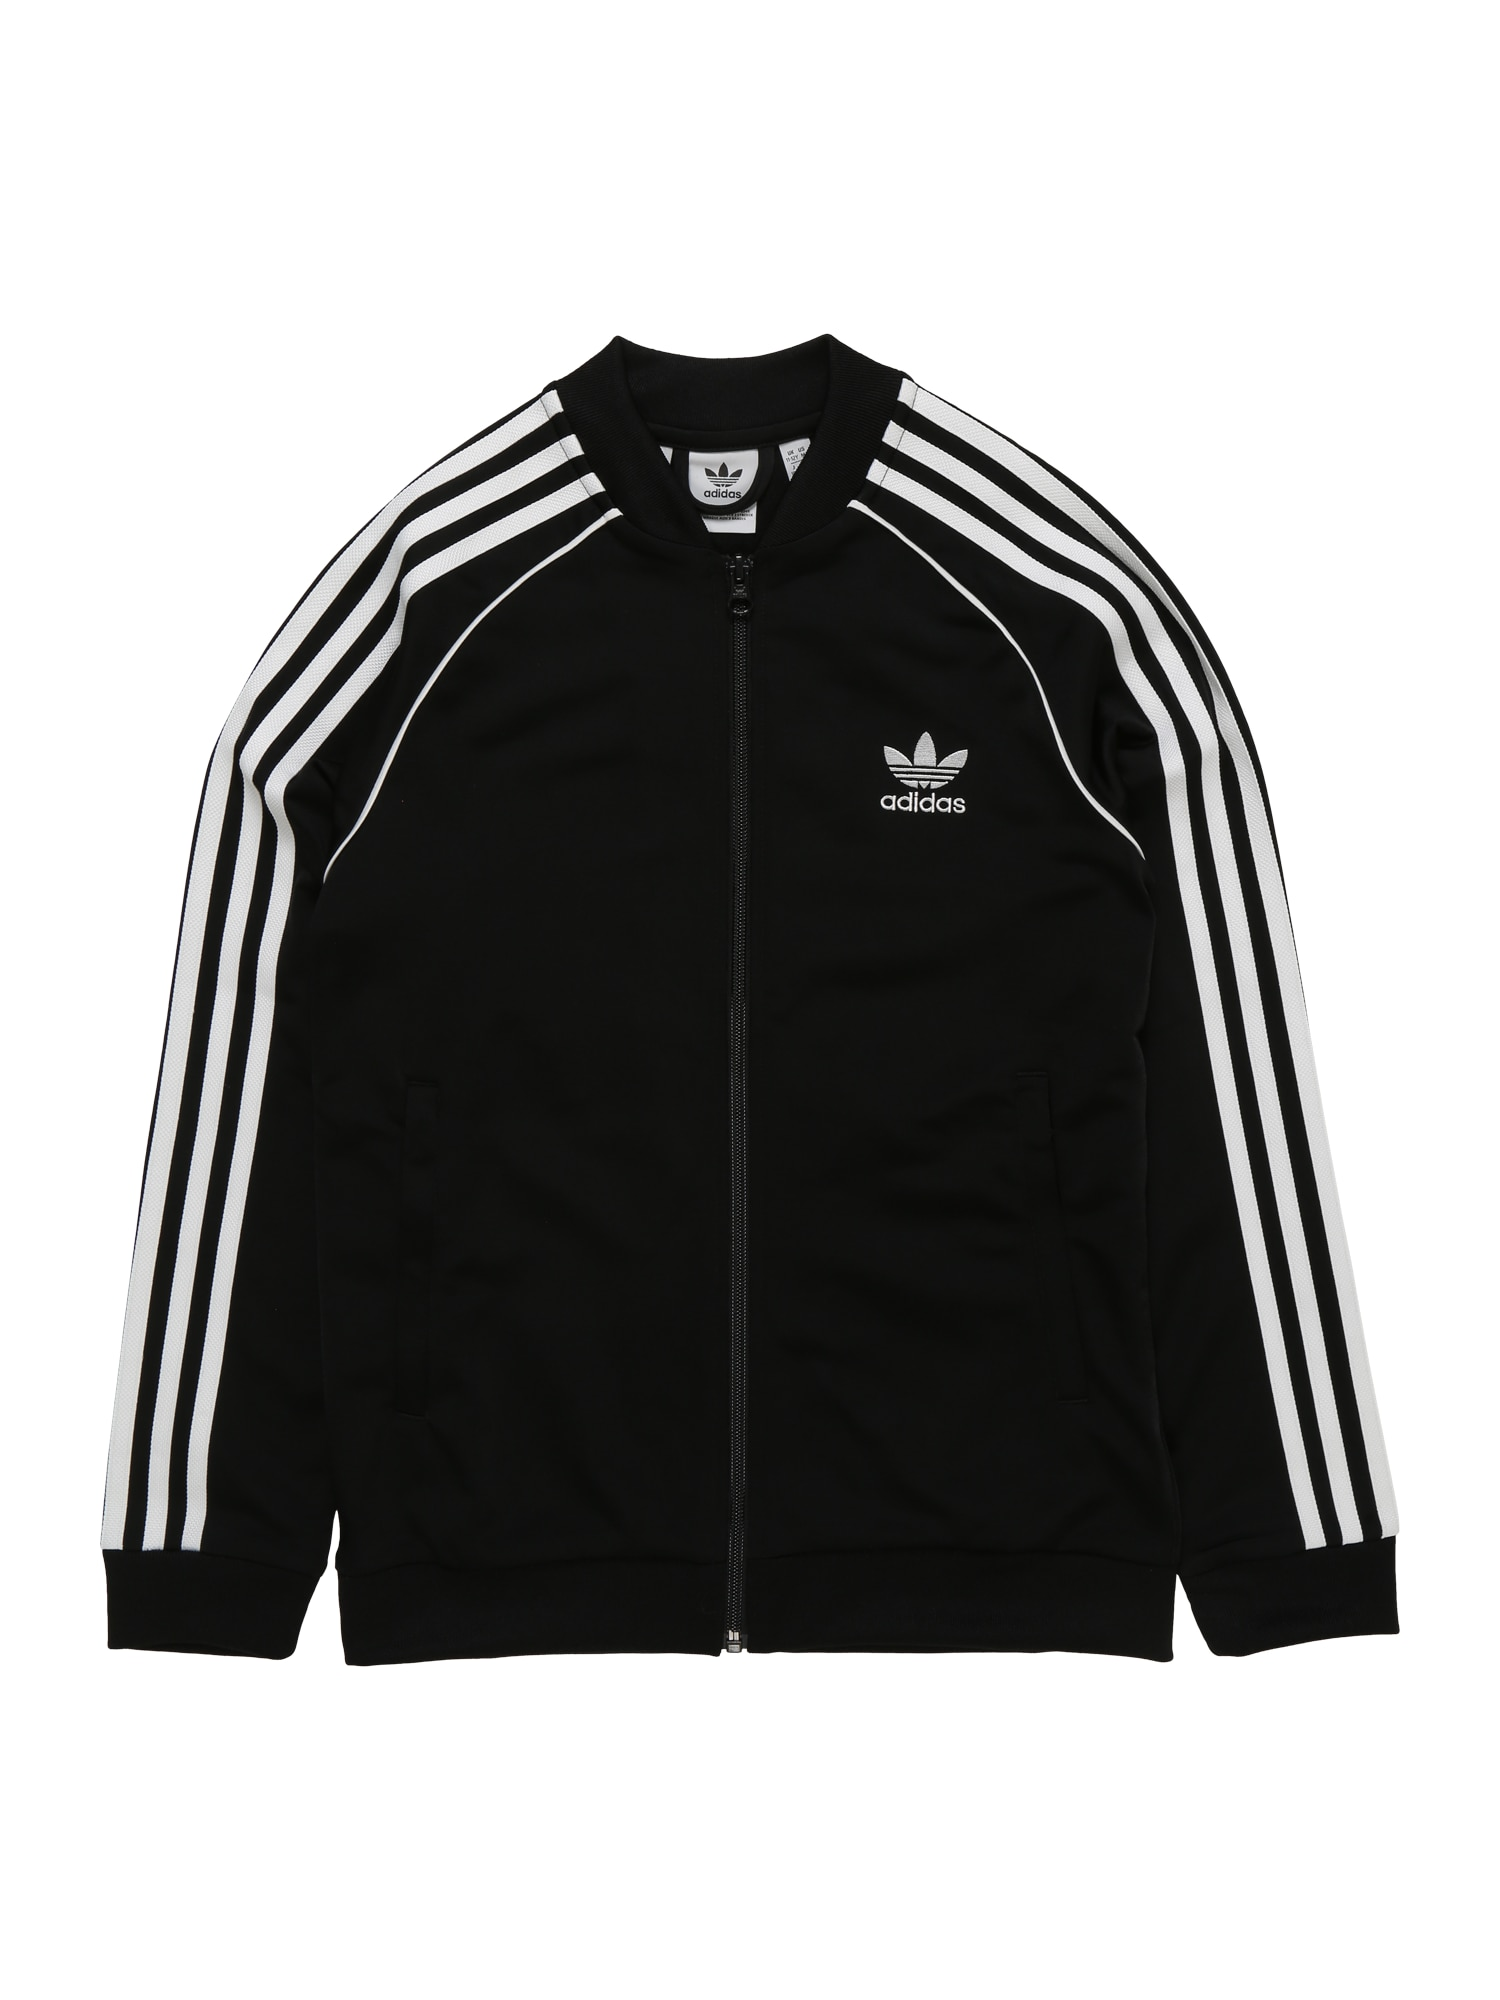 ADIDAS ORIGINALS Demisezoninė striukė 'Superstar Top' juoda / balta